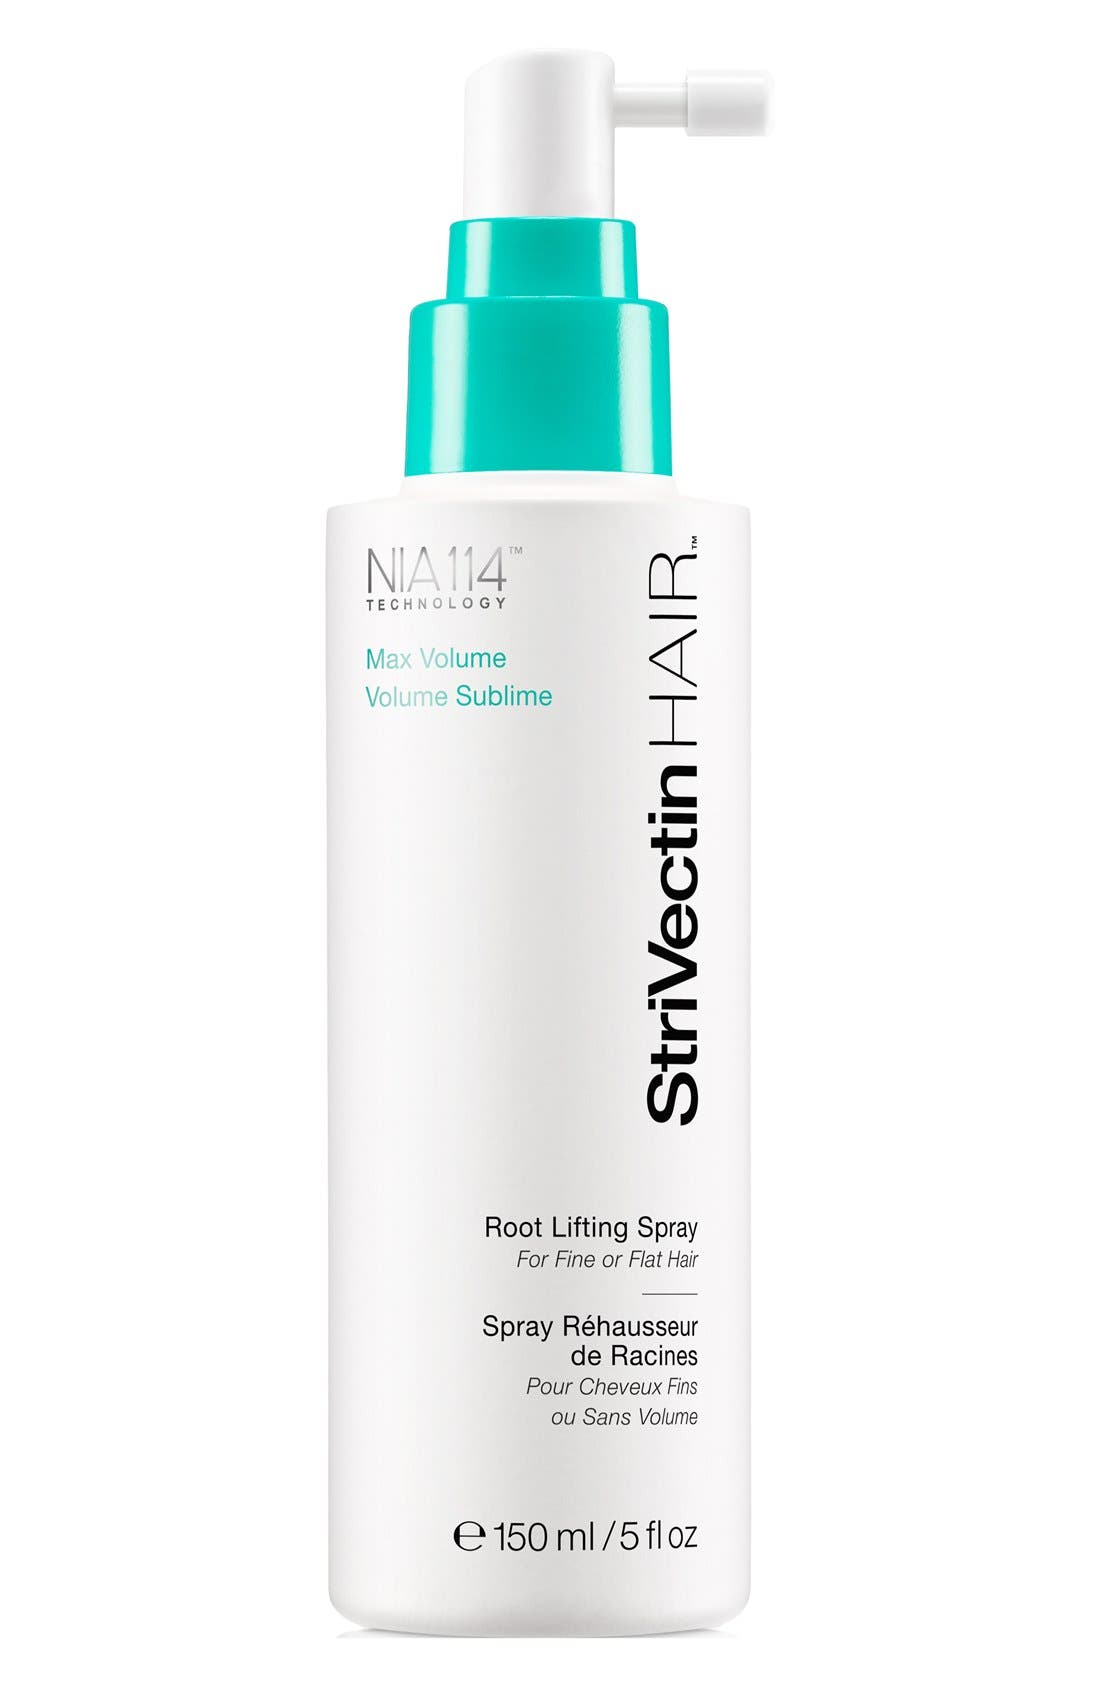 StriVectinHAIR<sup>™</sup> 'Max Volume' Root Lifting Spray for Flat or Fine Hair,                         Main,                         color, 000